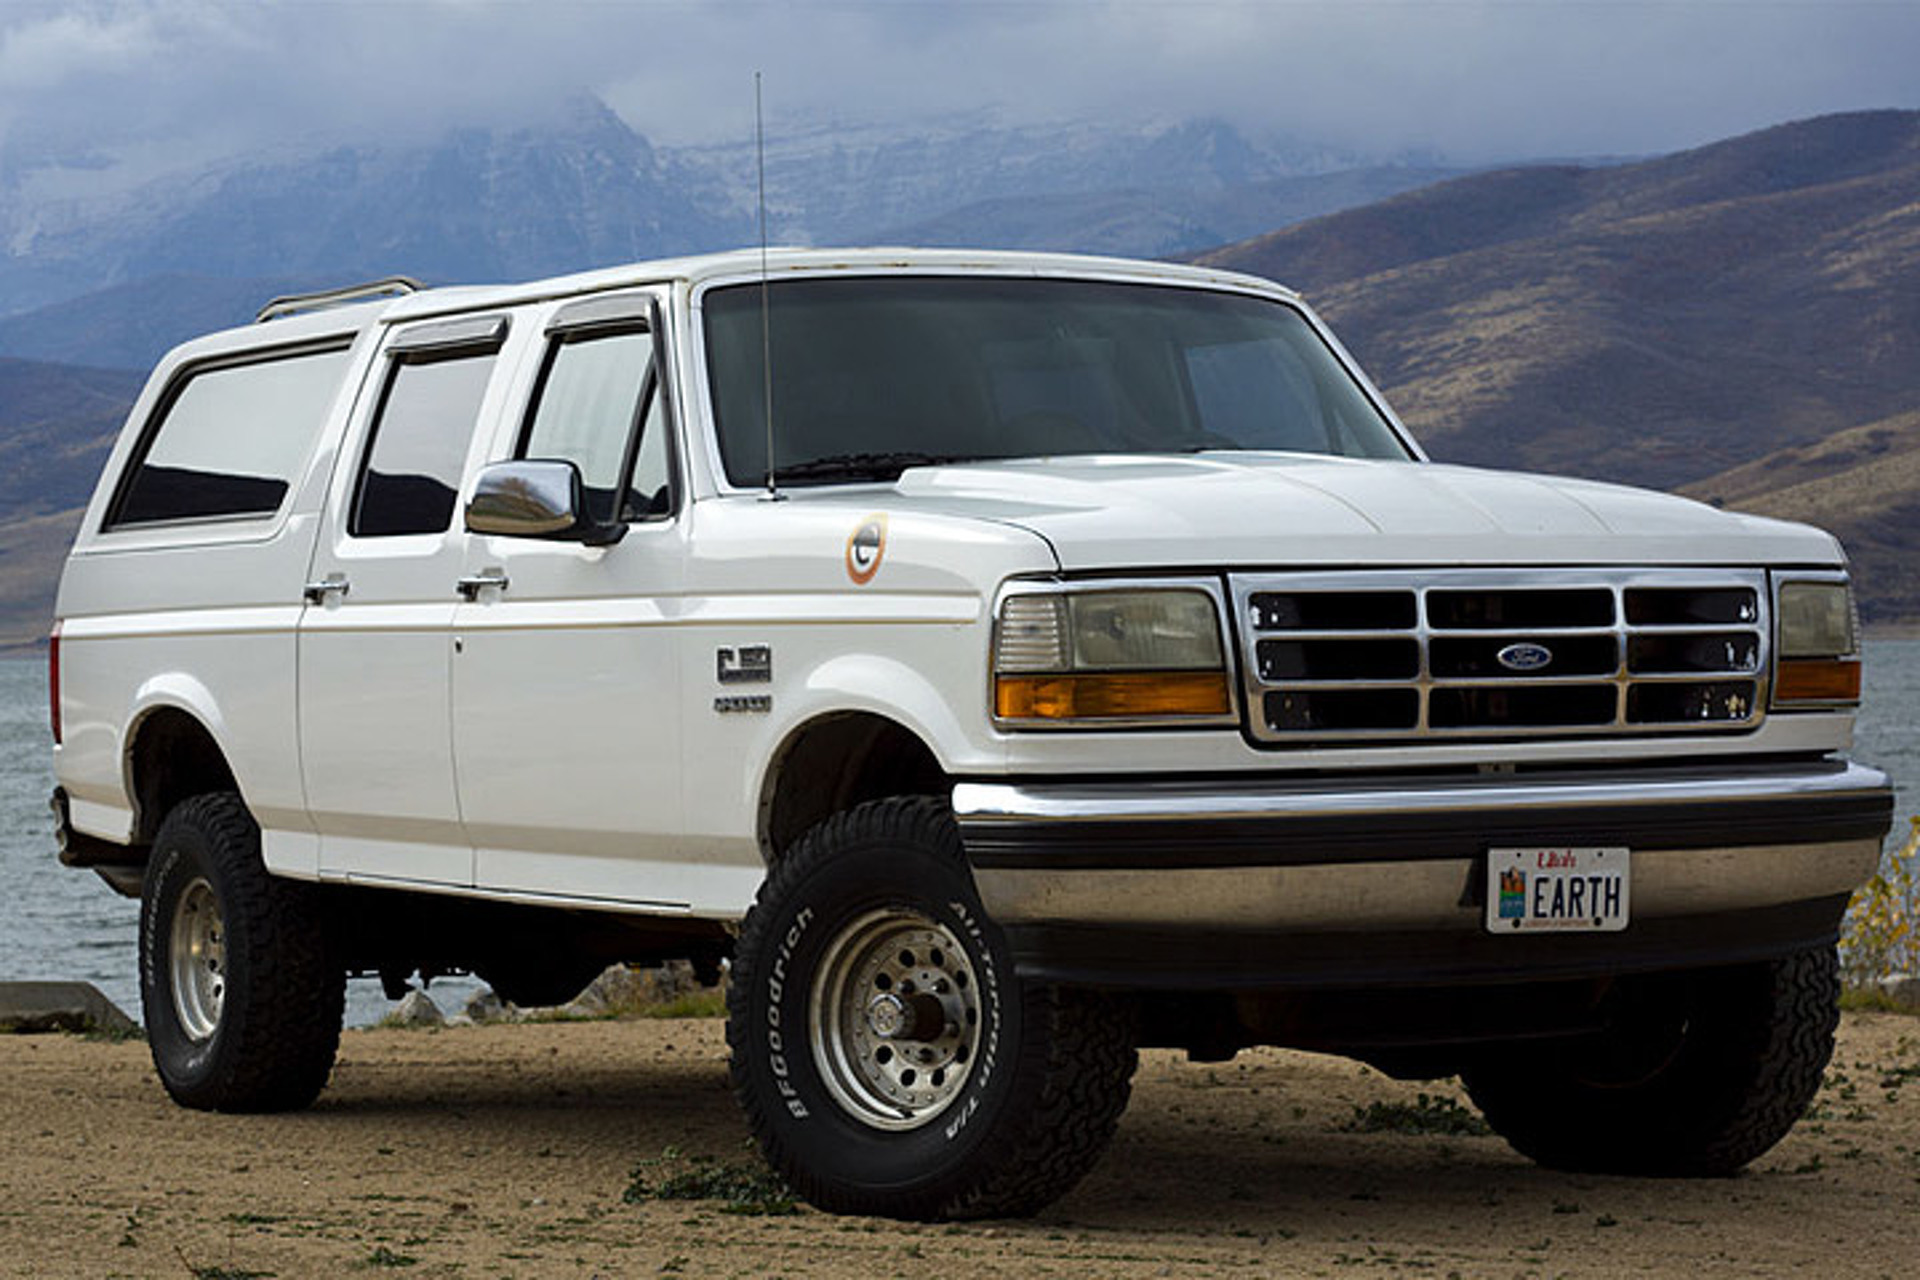 ford f150 bronco cat 6 verbinder 2020 page 3 grassroots motorsports forum